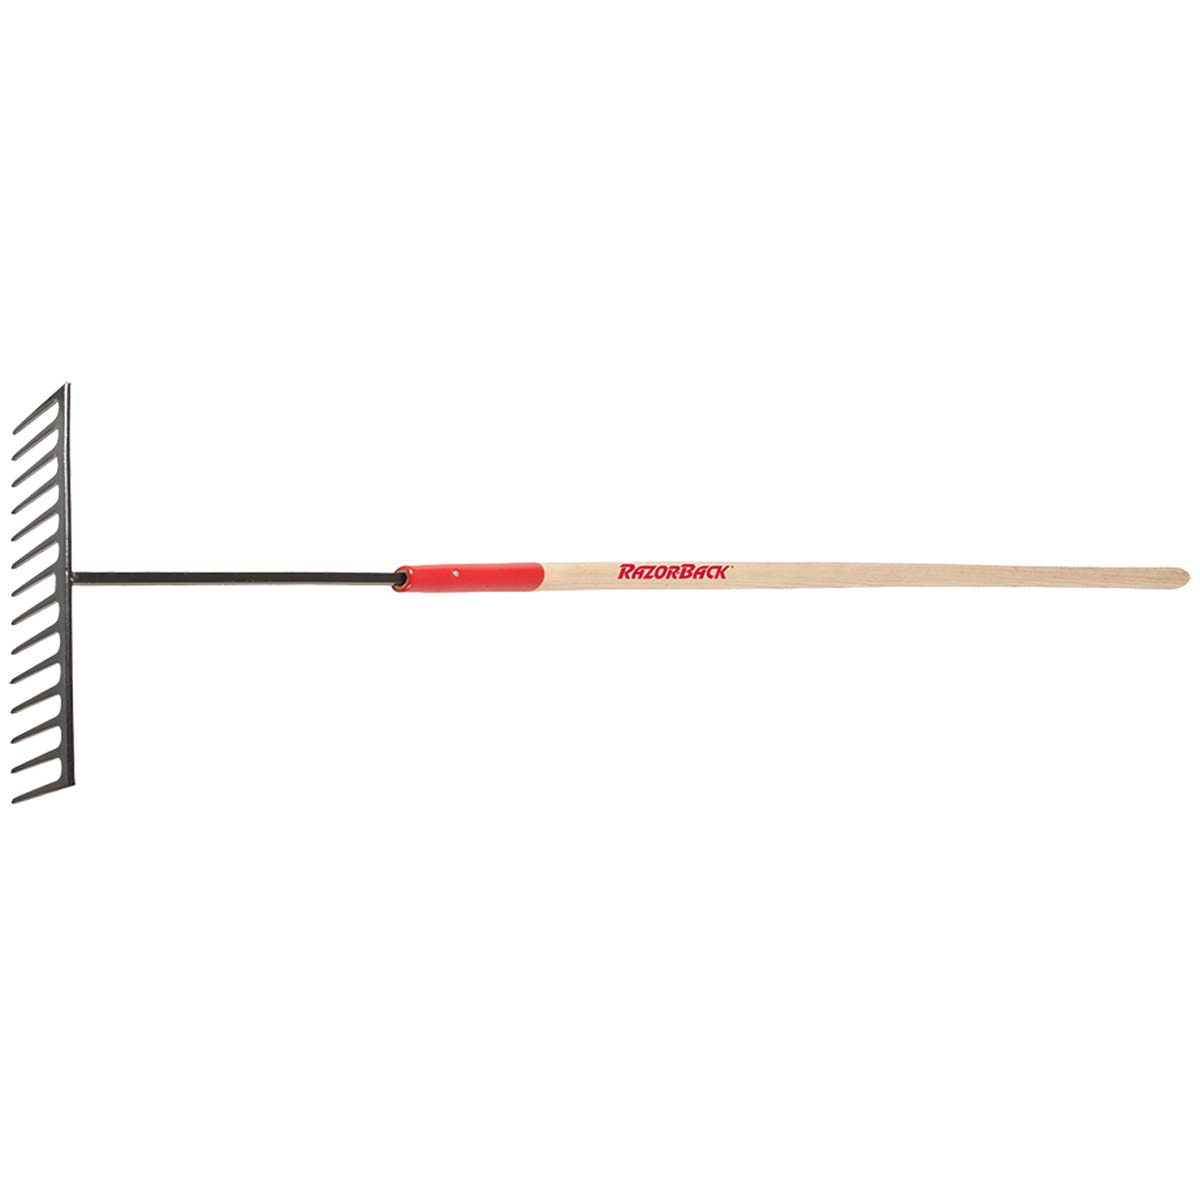 Ames Razor Back 63121 Heavy Duty Road Rake, 15-1/2 In W X 4 In L Head, 14 Tine, 66 In Handle